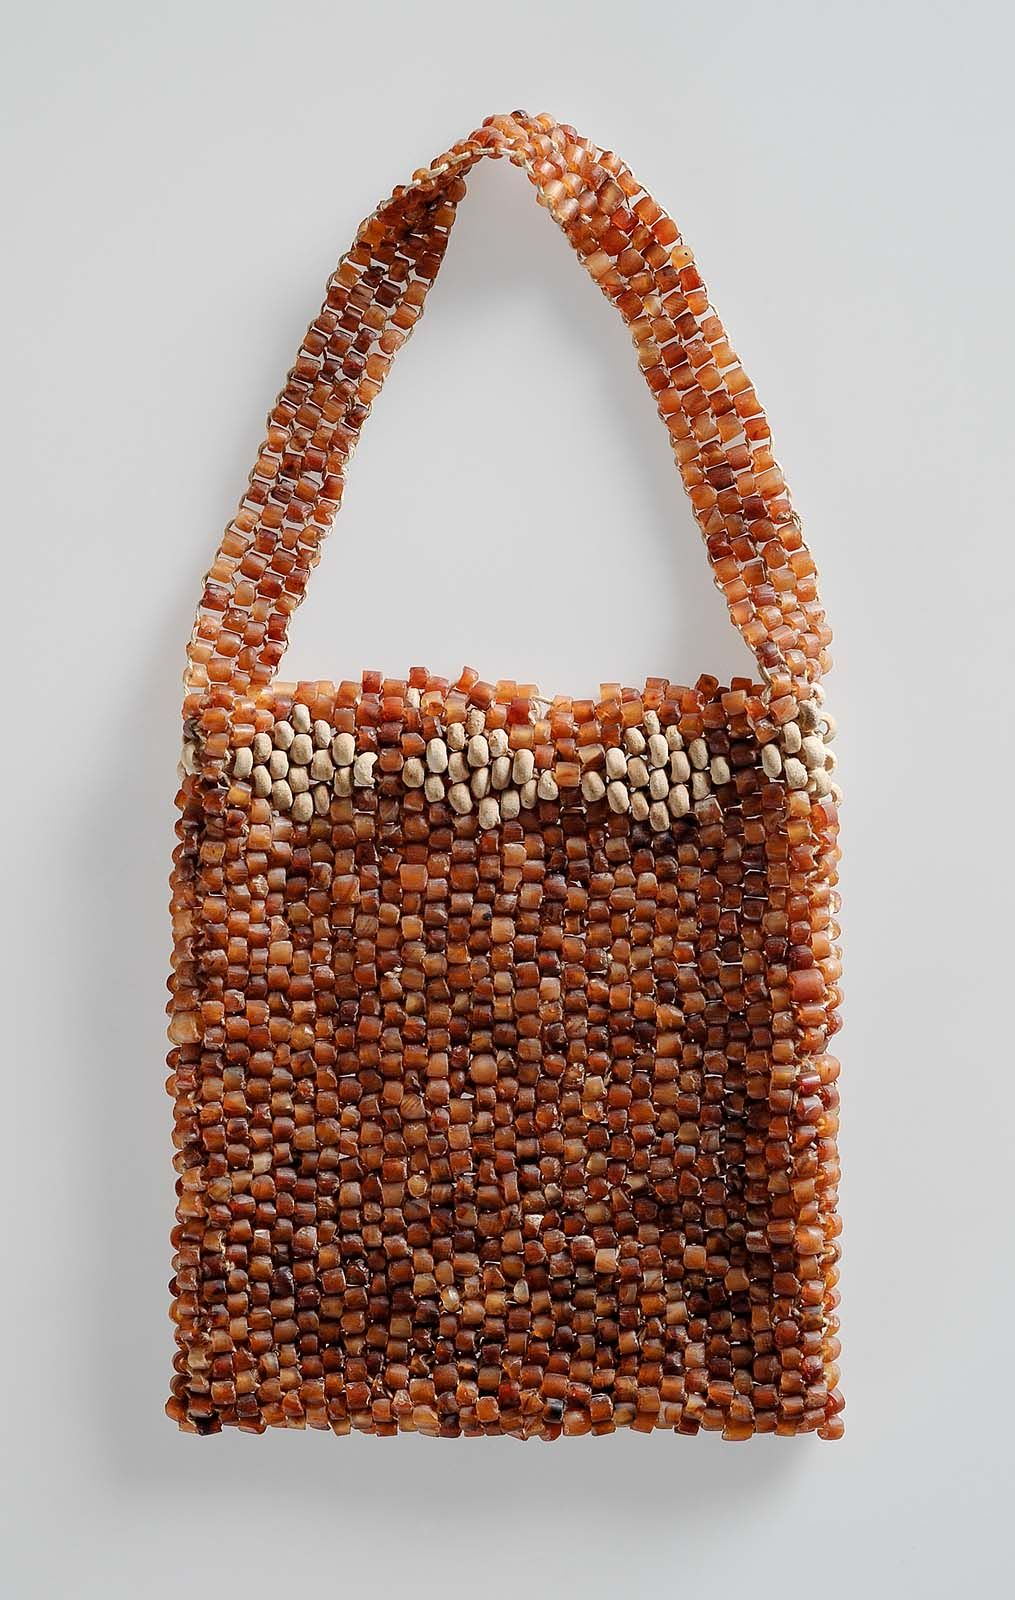 Pin by japonoz japonoz on KESE-CÜZDAN | Pinterest | Beaded bags ...